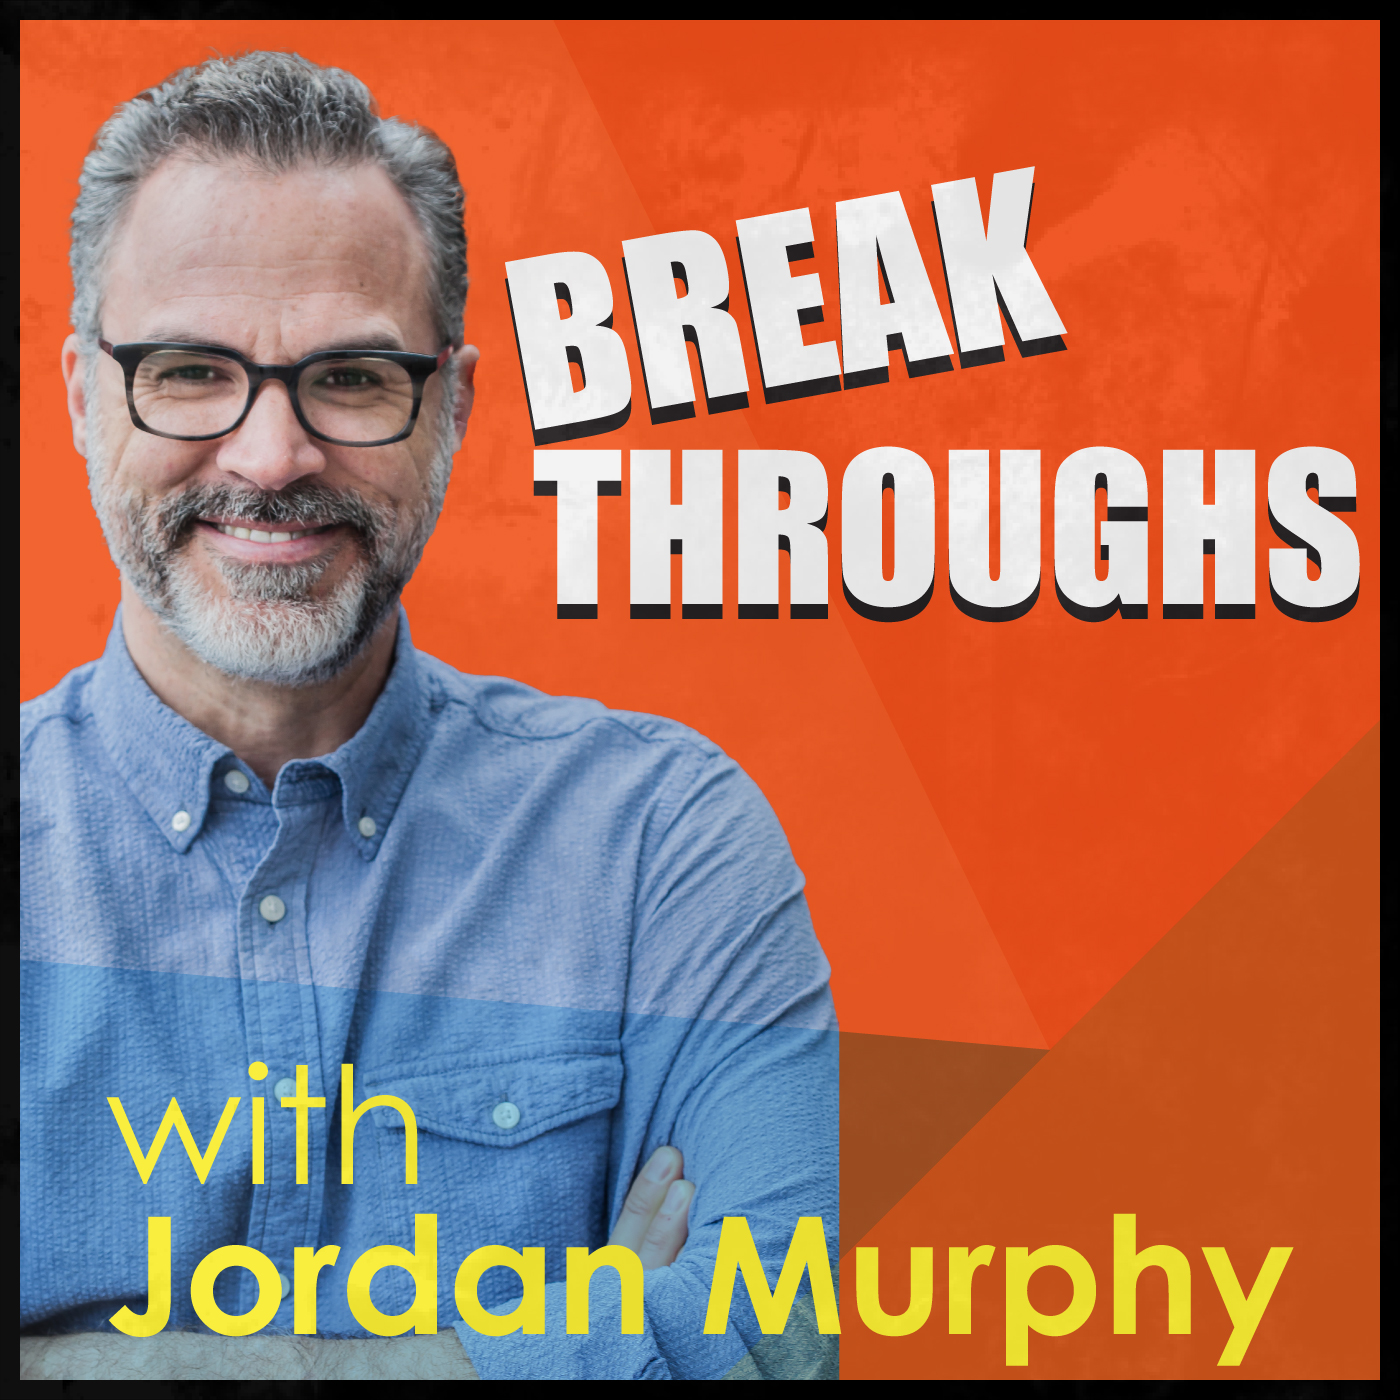 BREAKTHROUGHS with Jordan Murphy